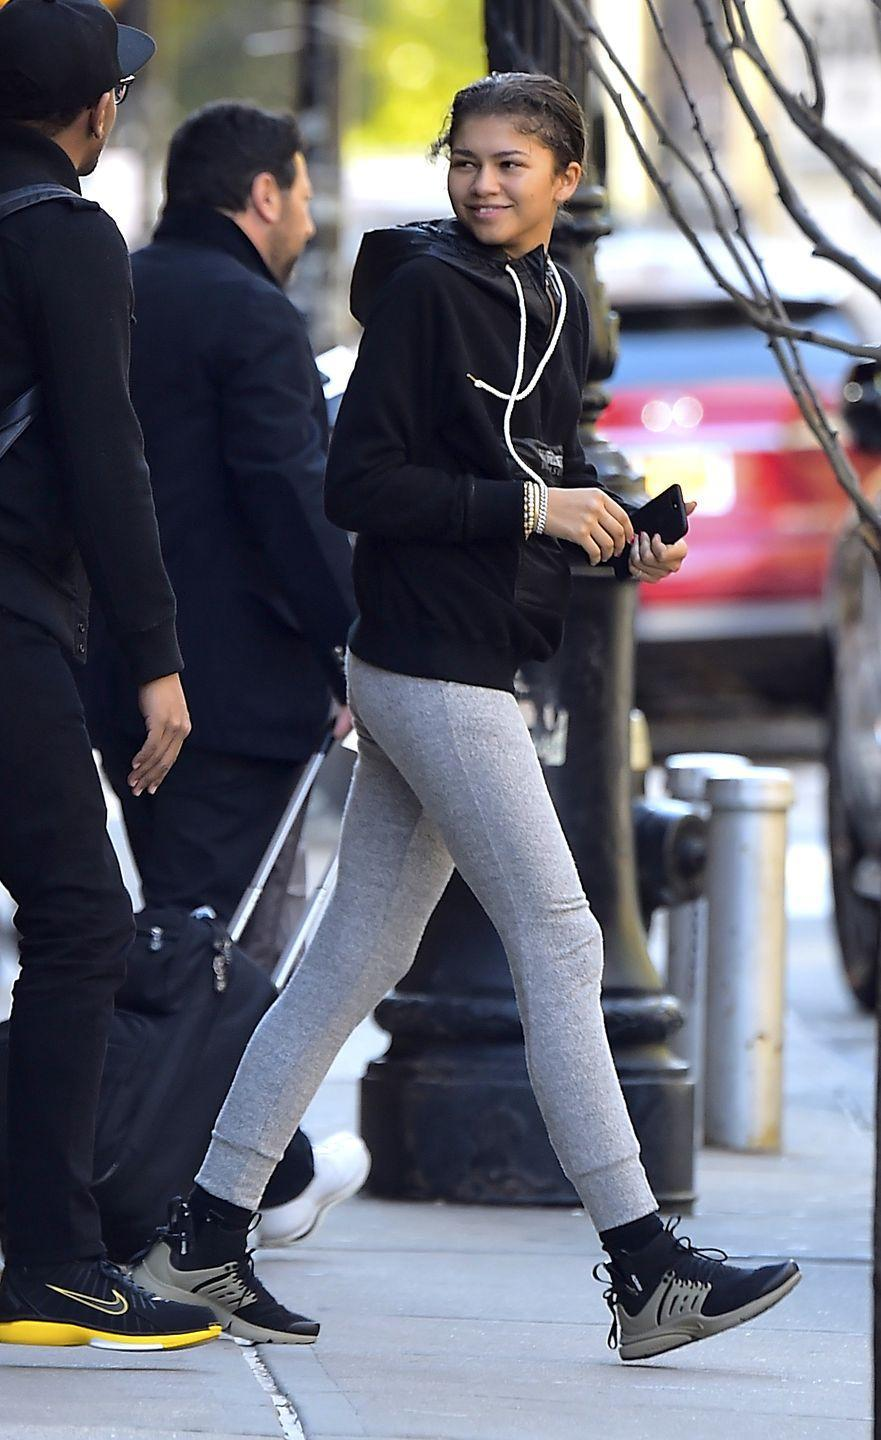 <p>Zendaya always has the best sneakers! Pair any look with some fresh kicks: sweats or even a summer dress, for a Zendaya inspired outfit.</p>